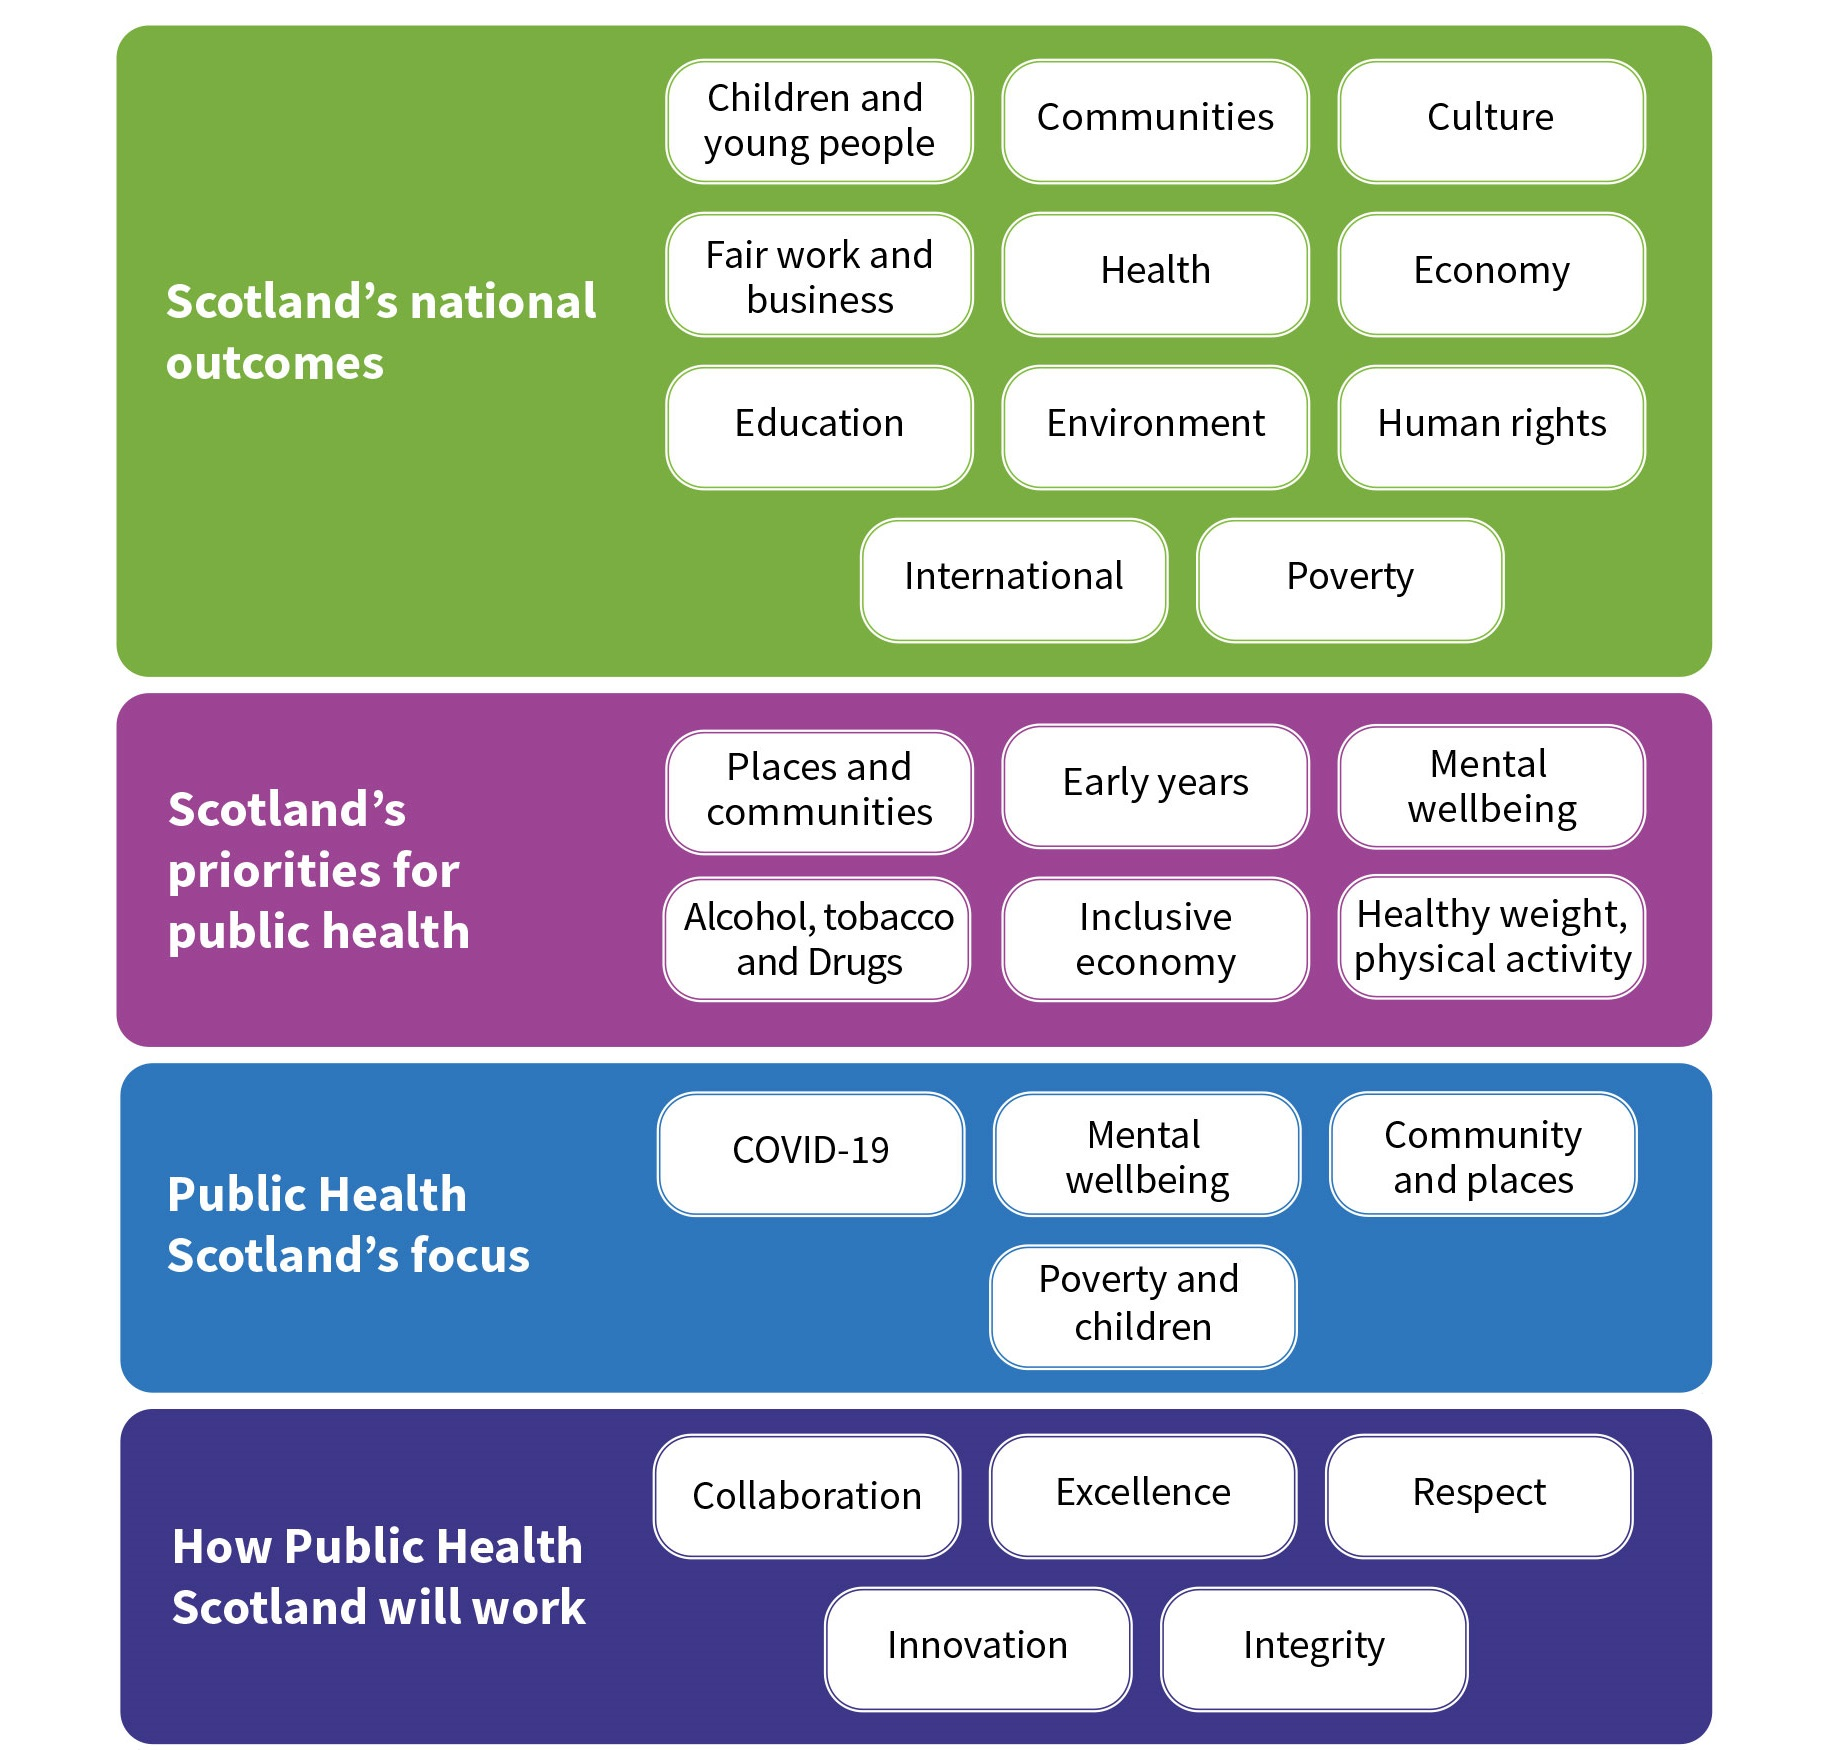 Display of the elements of the strategy - Scotland's national outcomes, Scotland's priorities for public health, Public Health Scotland's focus and how Public Health Scotland will work